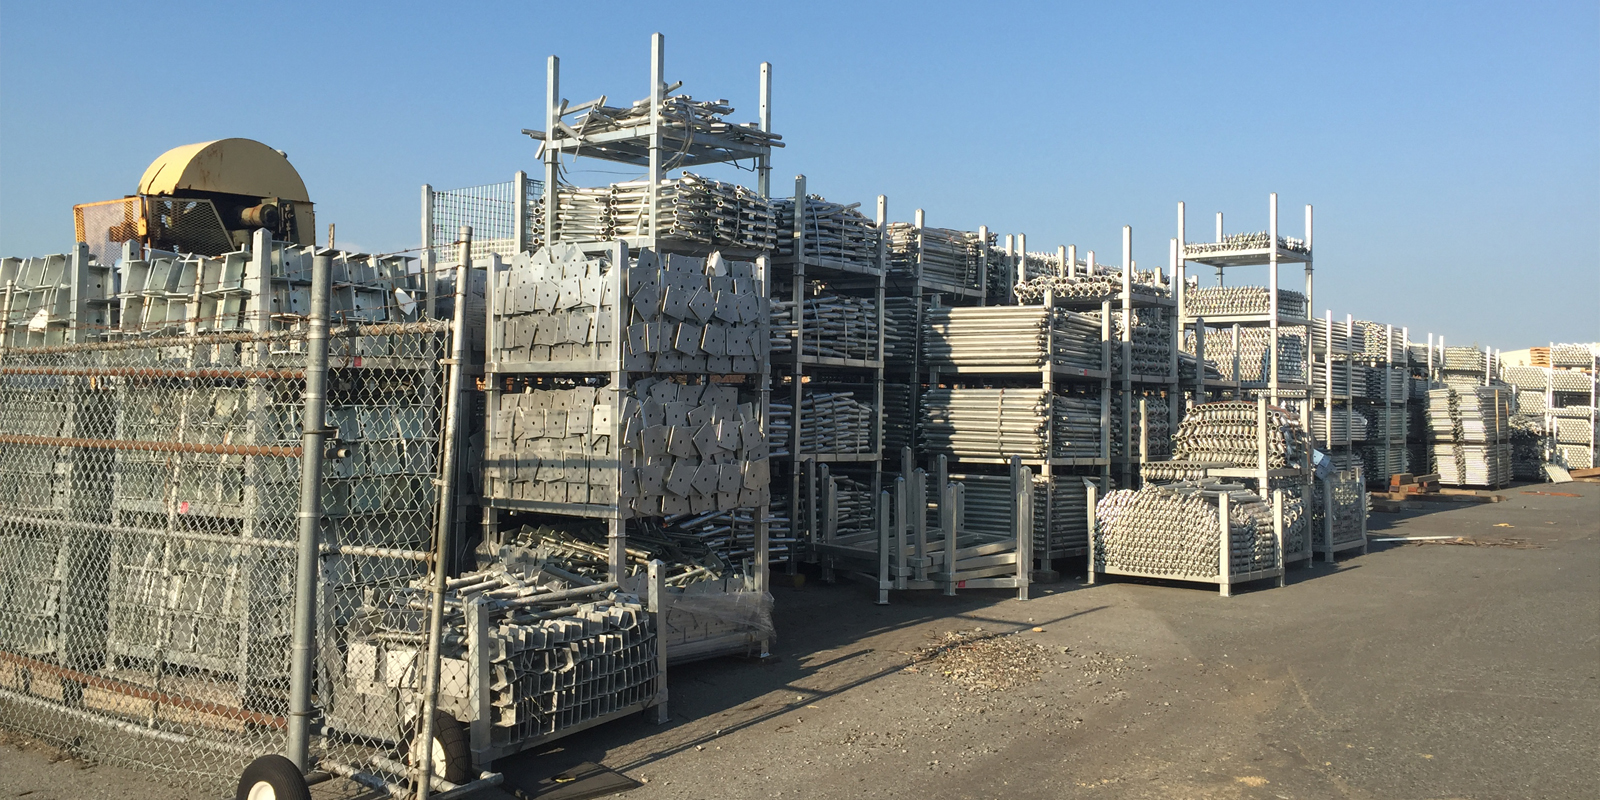 Safetech Scaffold Ltd. offers high quality scaffolding products for companies across the world